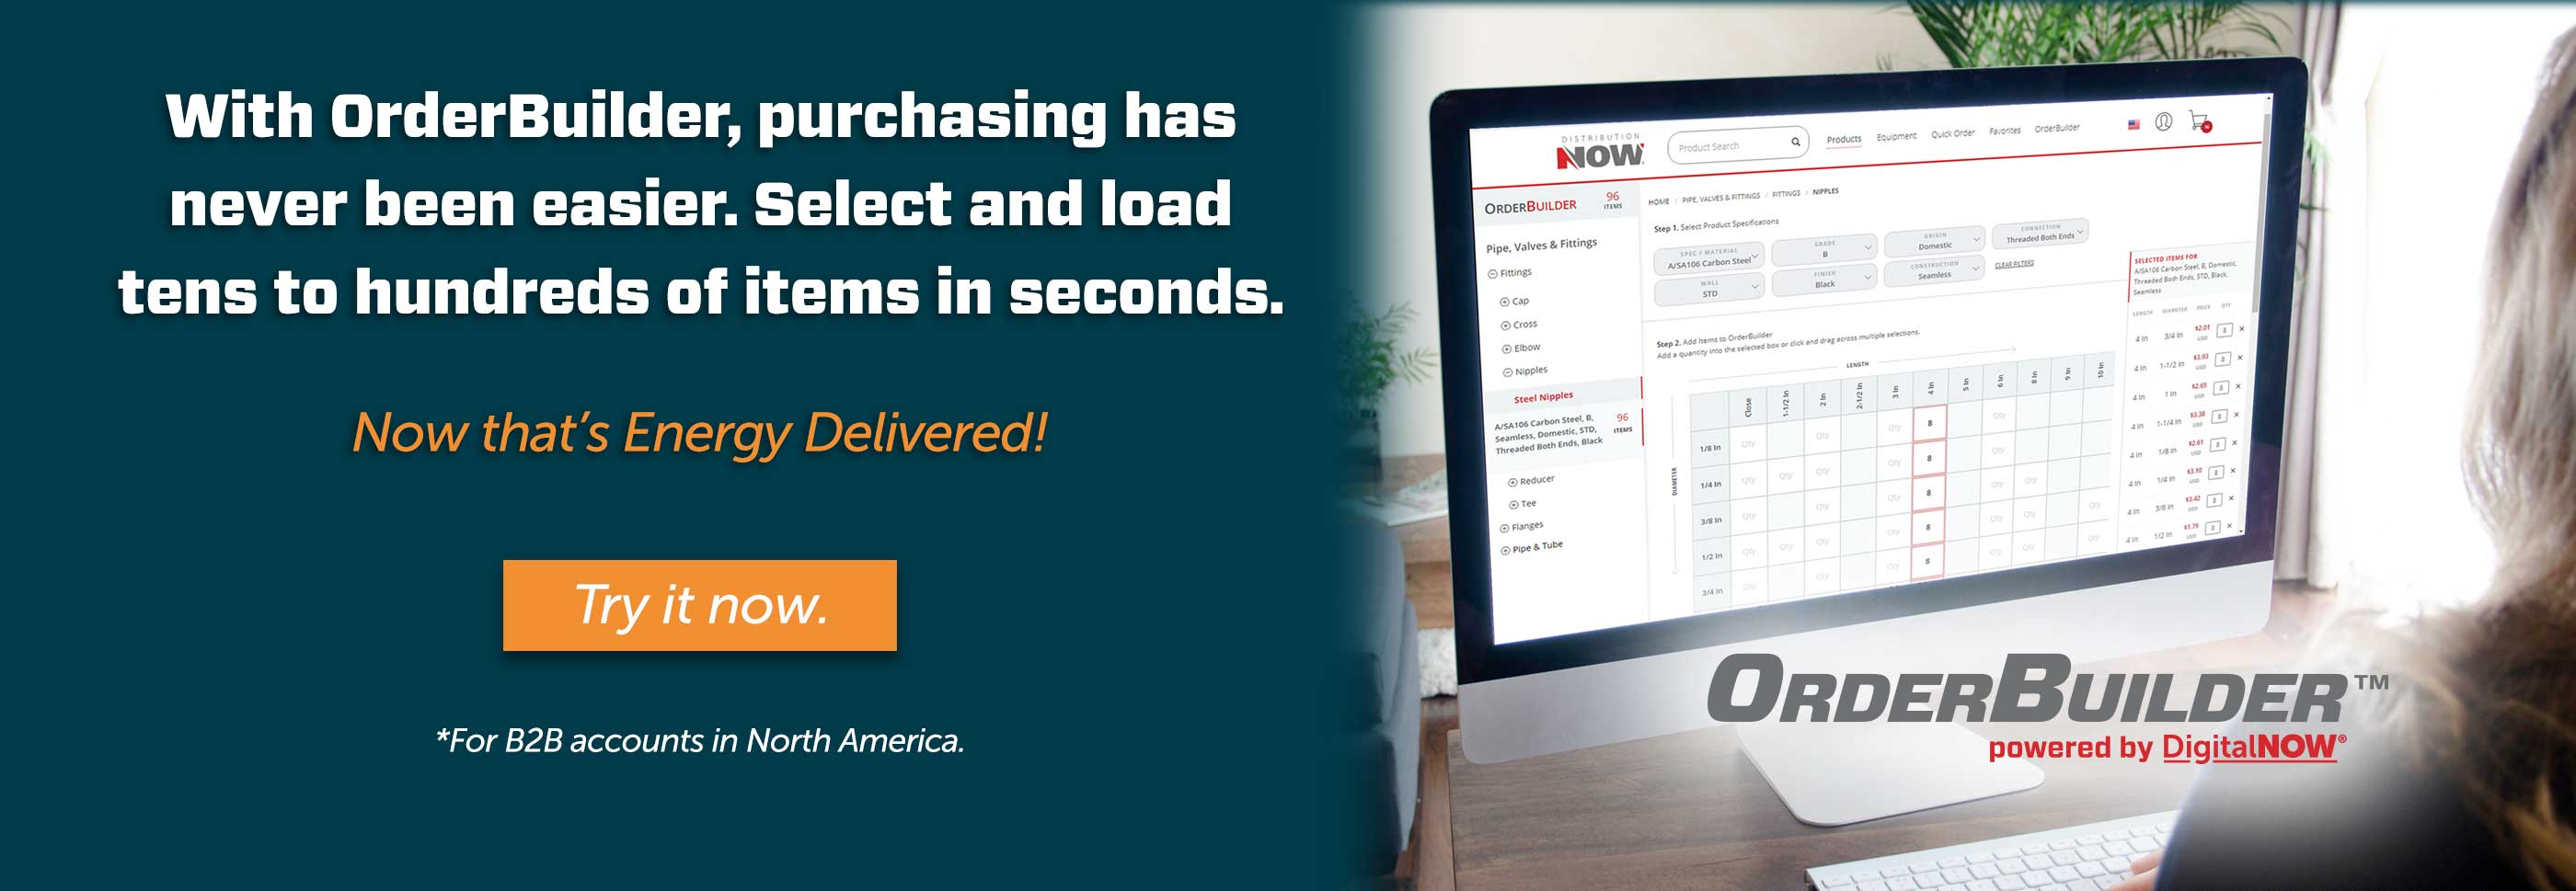 With OrderBuilder, purchasing as never been easier.